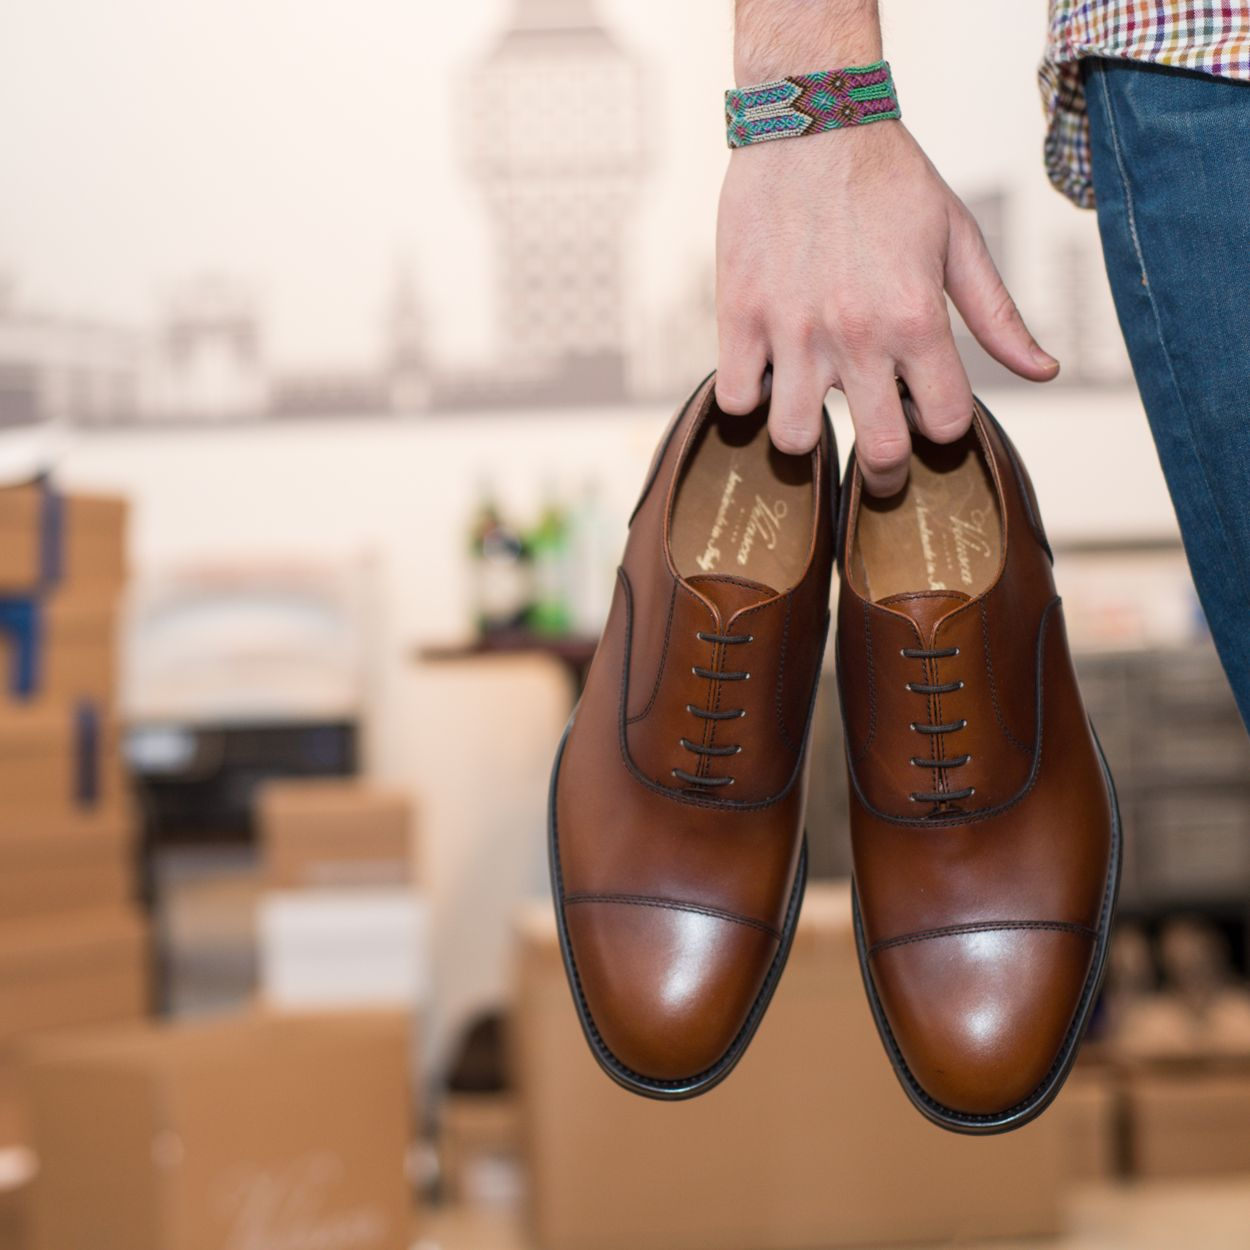 """Cicisbeo"" --> #brown oxford available at www.velasca.com #velascamilano #menswear #mensshoes #mensstyle #mensfashion #gentlemen #madeinitaly #shoes #style"